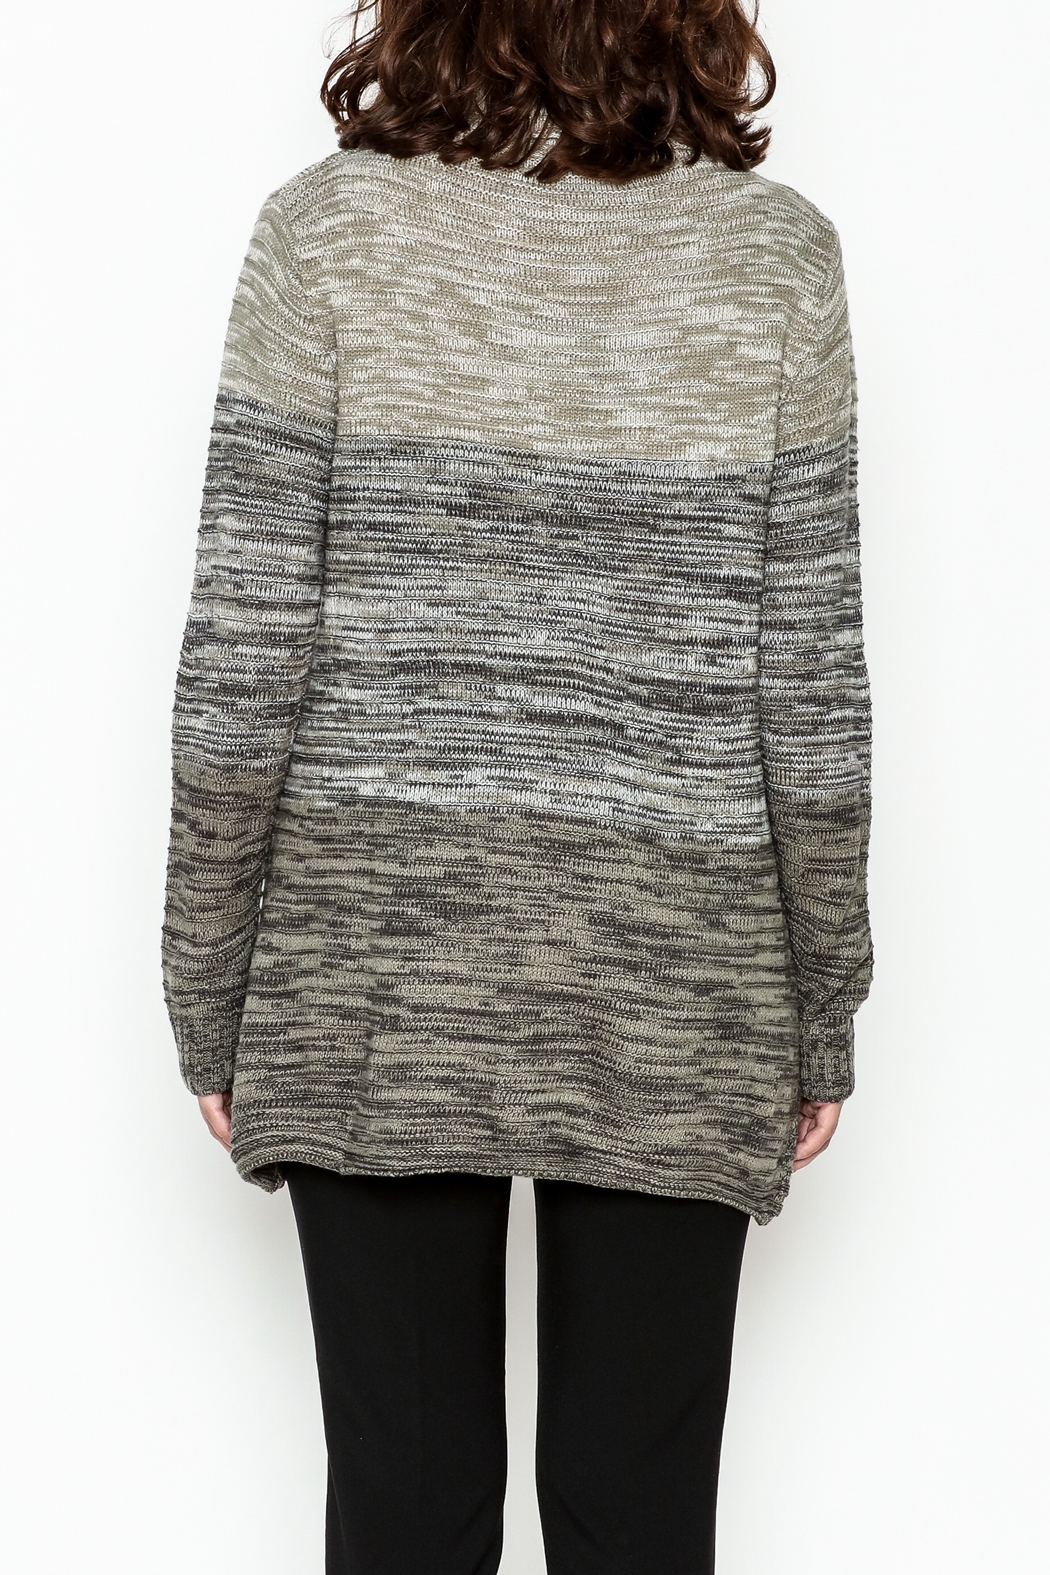 Keren Hart Variegated Cowl Neck Sweater - Back Cropped Image